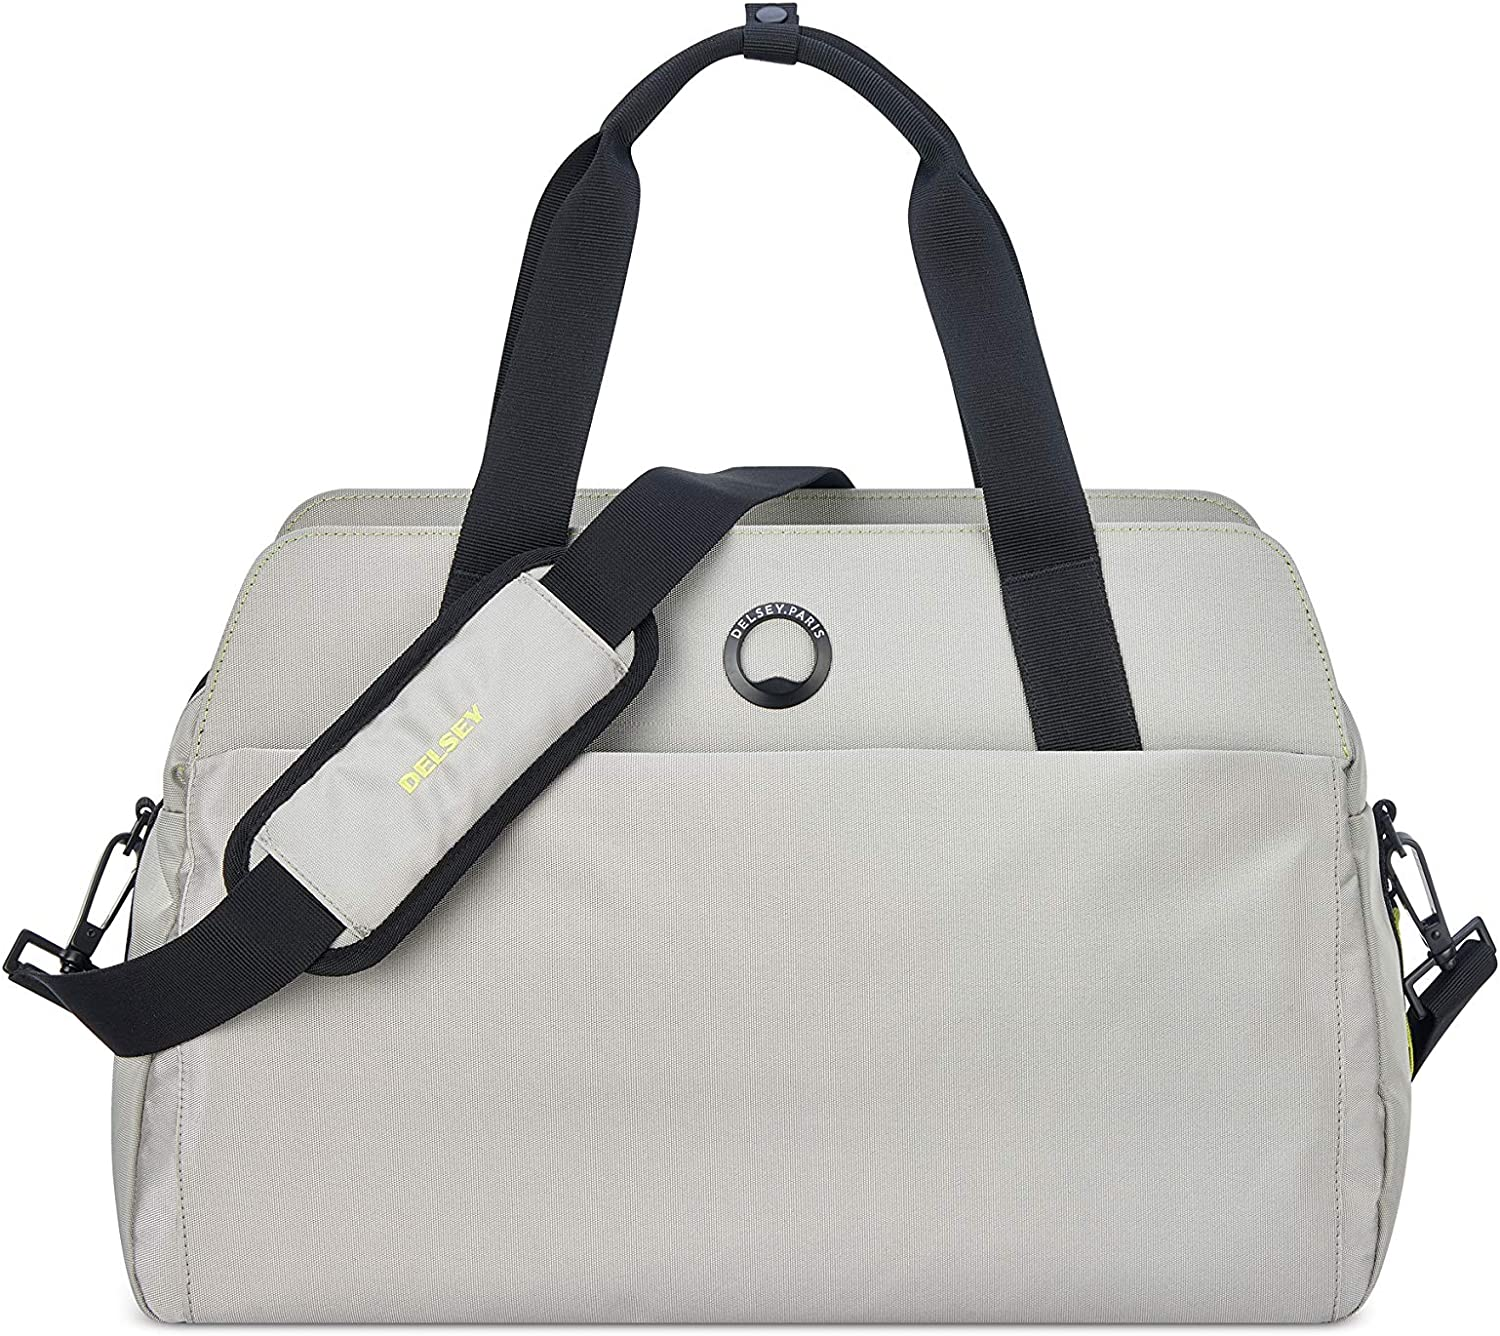 DELSEY Paris Daily's Travel Duffel Bag with Laptop Sleeve